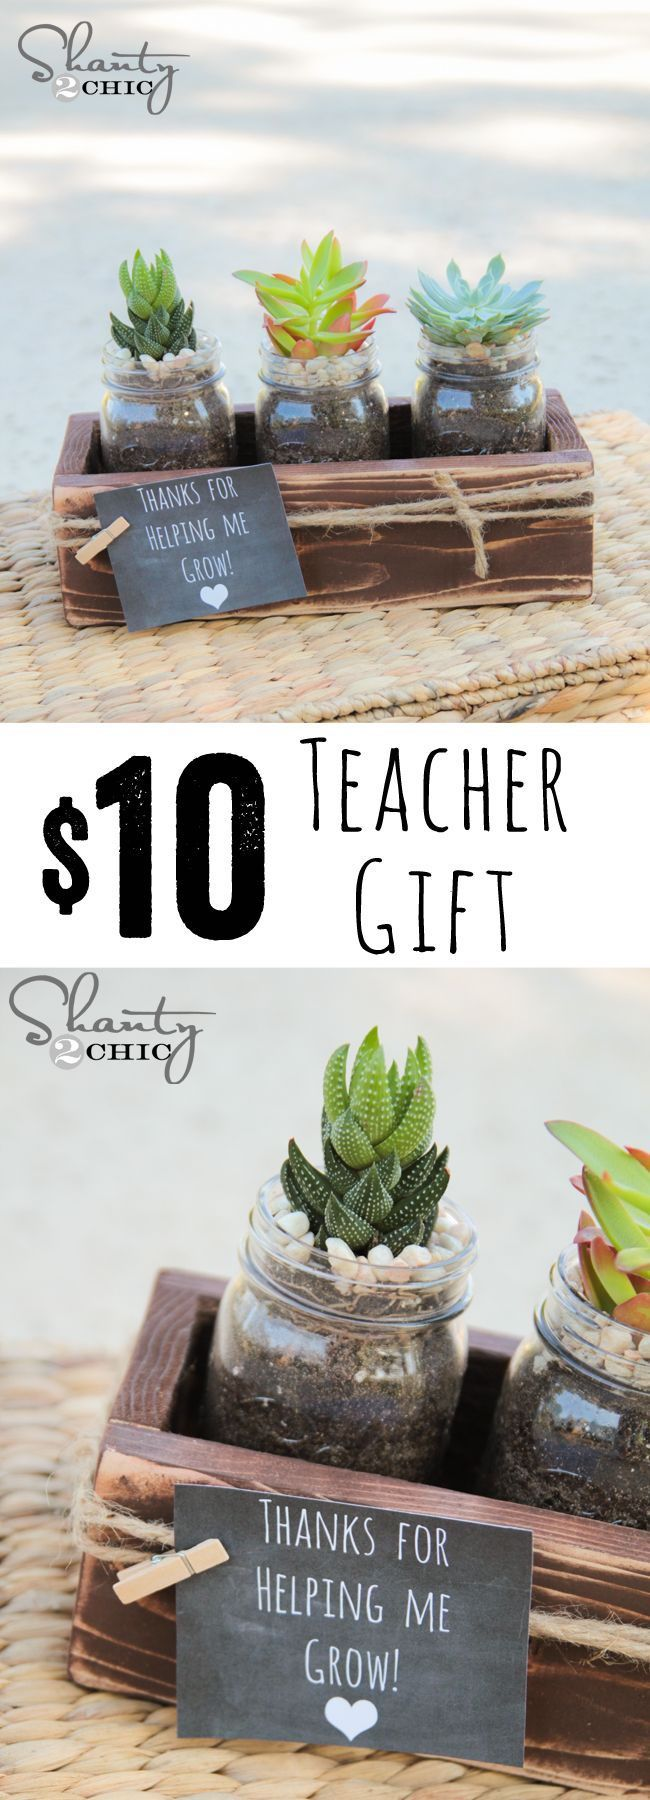 The 11 Best DIY Teacher Gifts | Page 2 of 3 | The Eleven Best